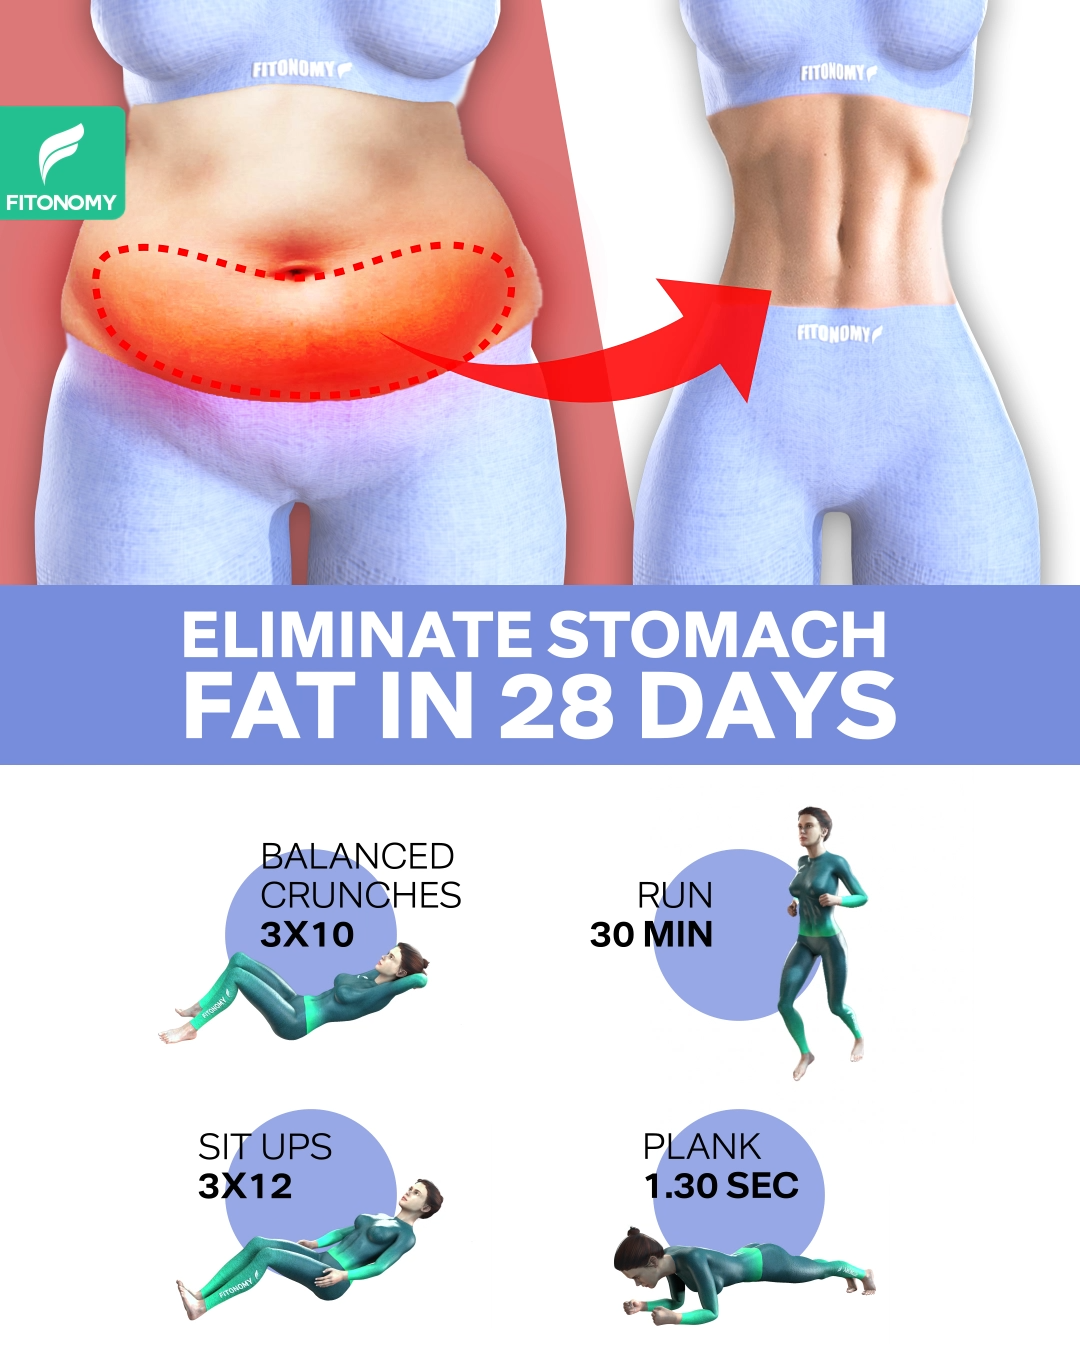 ELIMINATE STOMACH FAT IN 28 DAYS